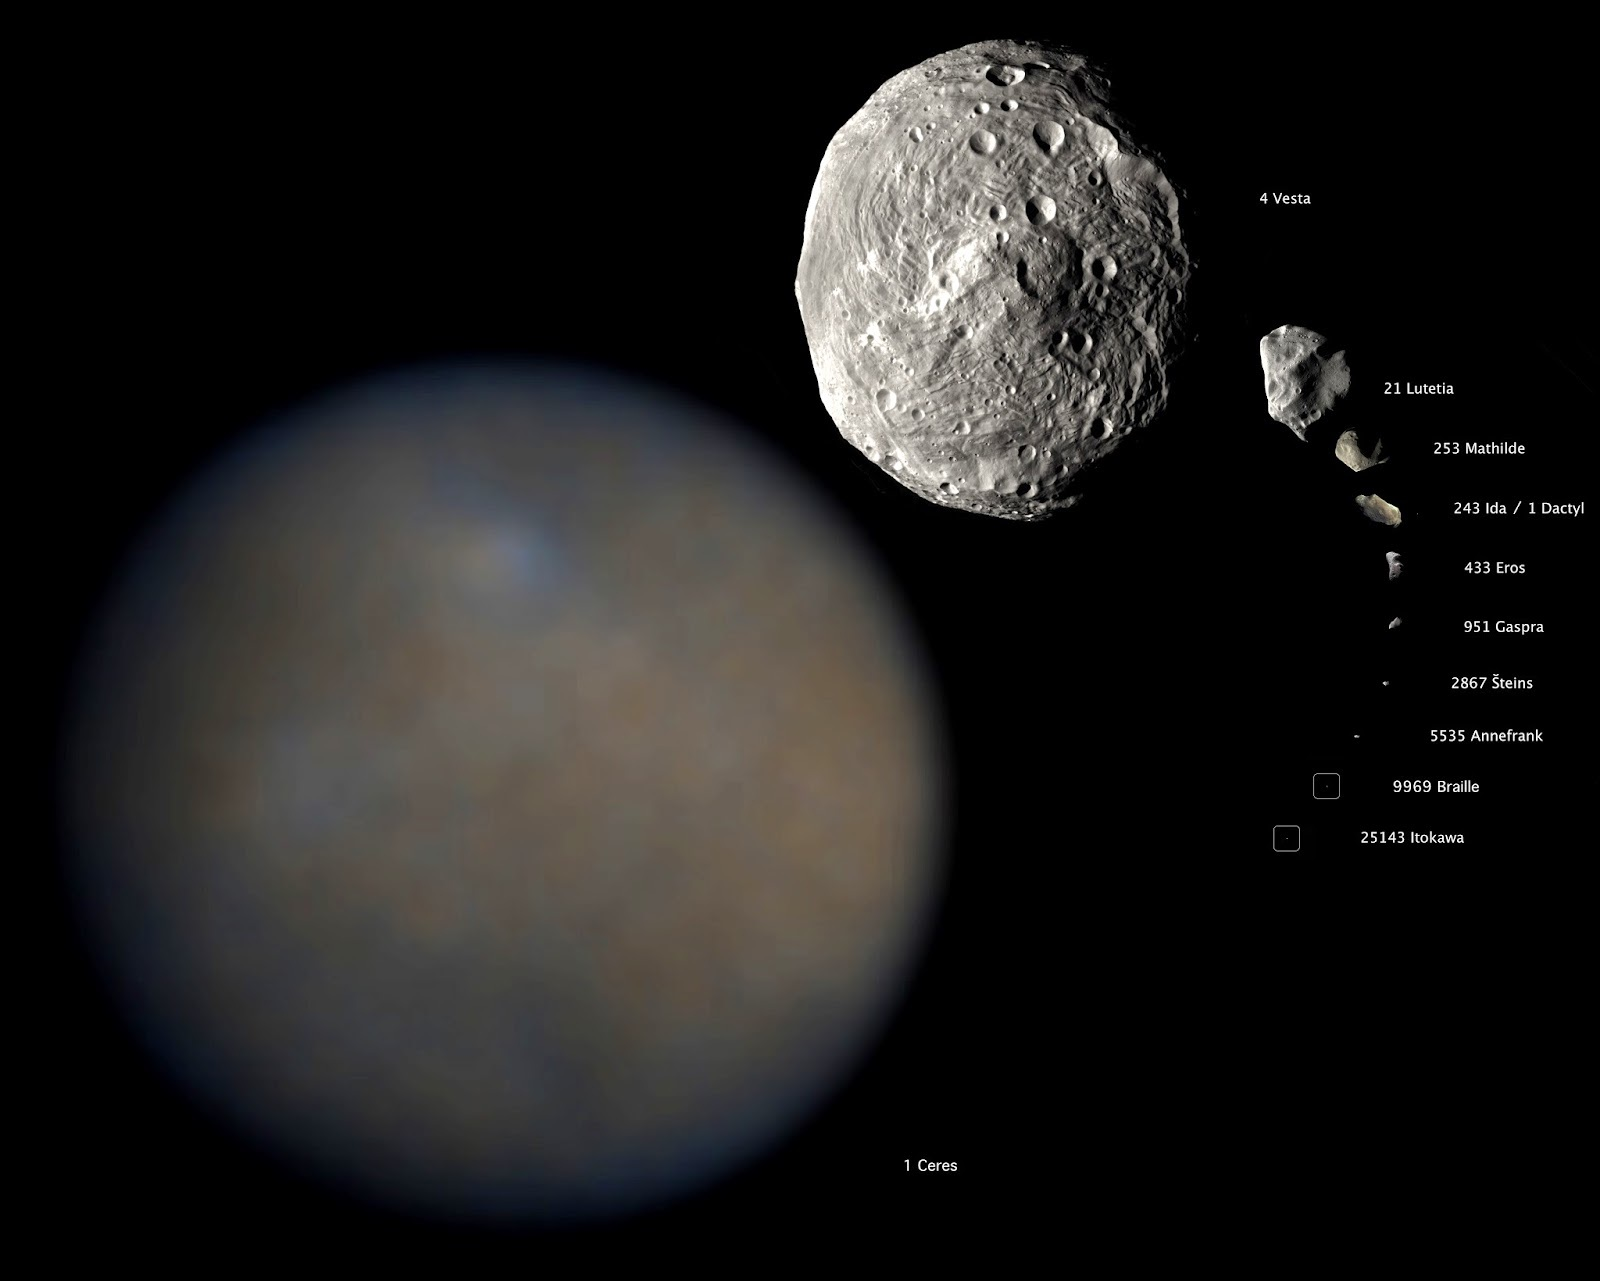 20150115_asteroid-comparison-ps5-ceres